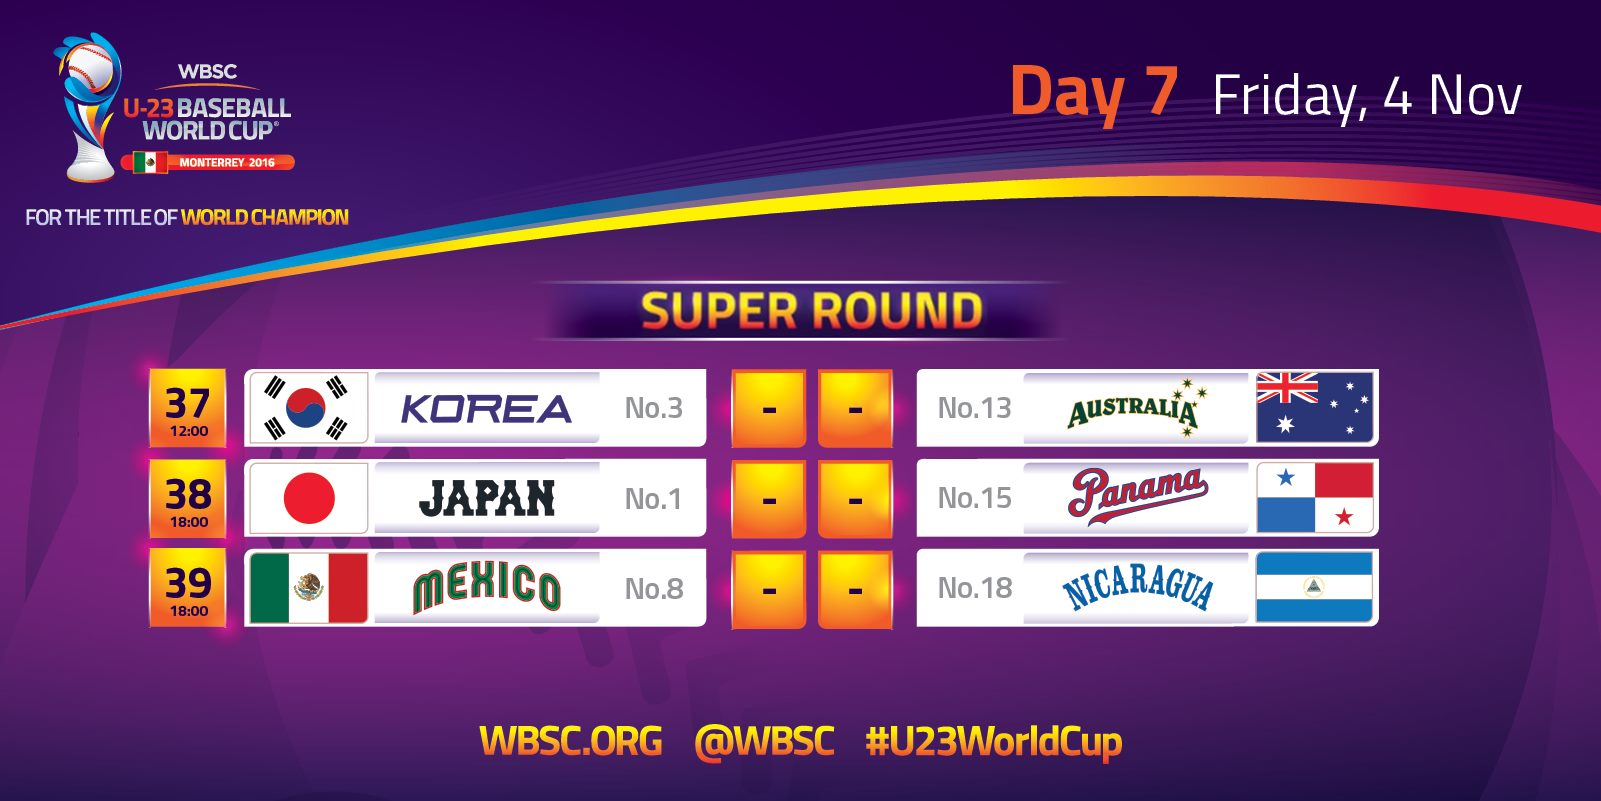 Day 7 - U-23 Baseball World Cup 2016